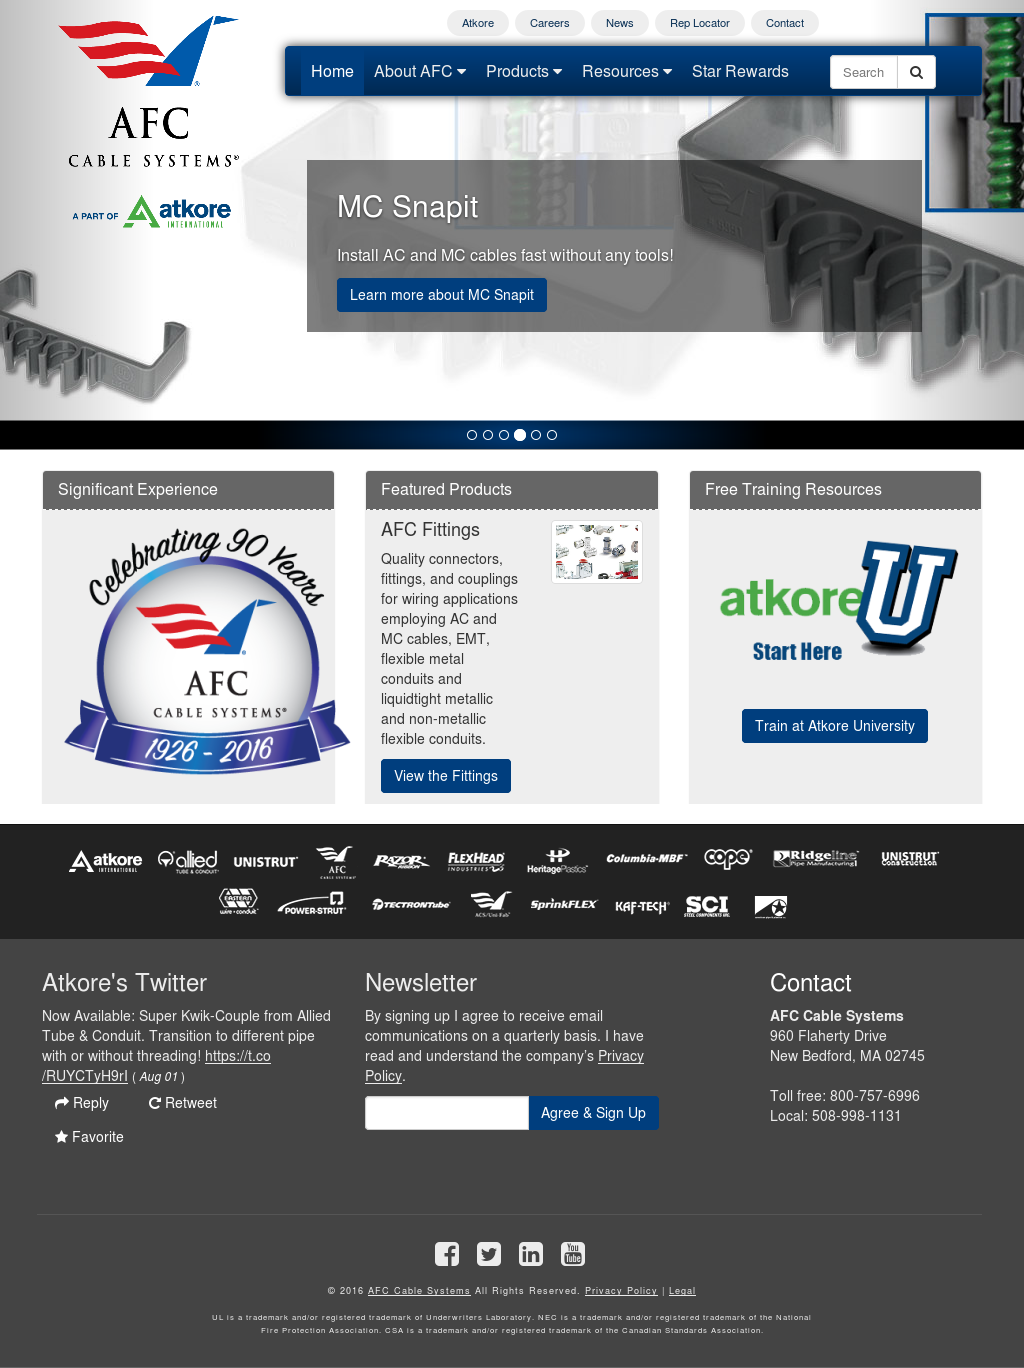 AFC Cable Systems Competitors, Revenue and Employees - Owler Company ...